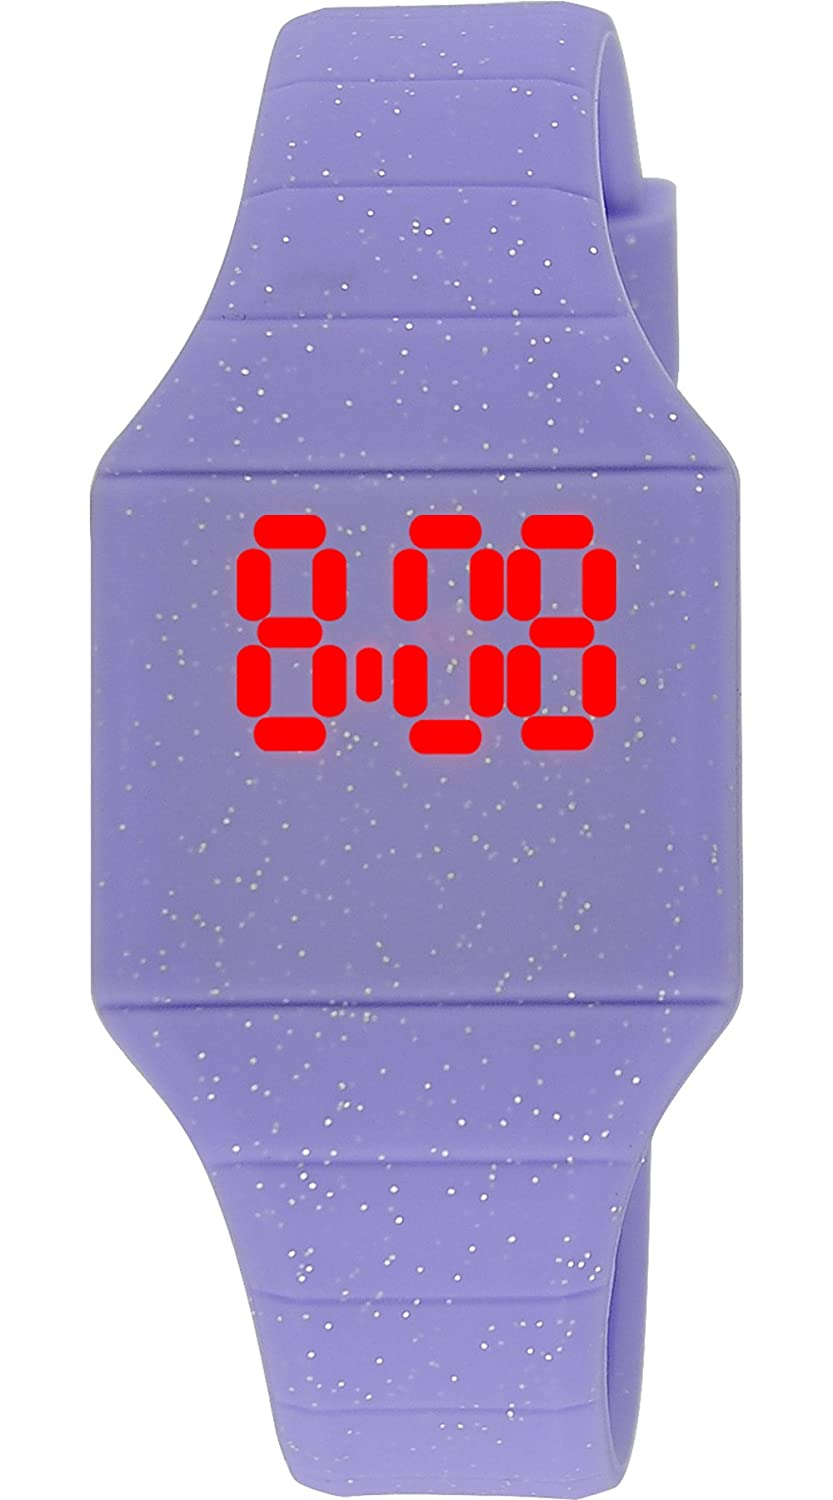 Moulin Girls LED Touch-Activated Lavender Glitter Silicone Watch with Stainless Steel Back #03088.75500